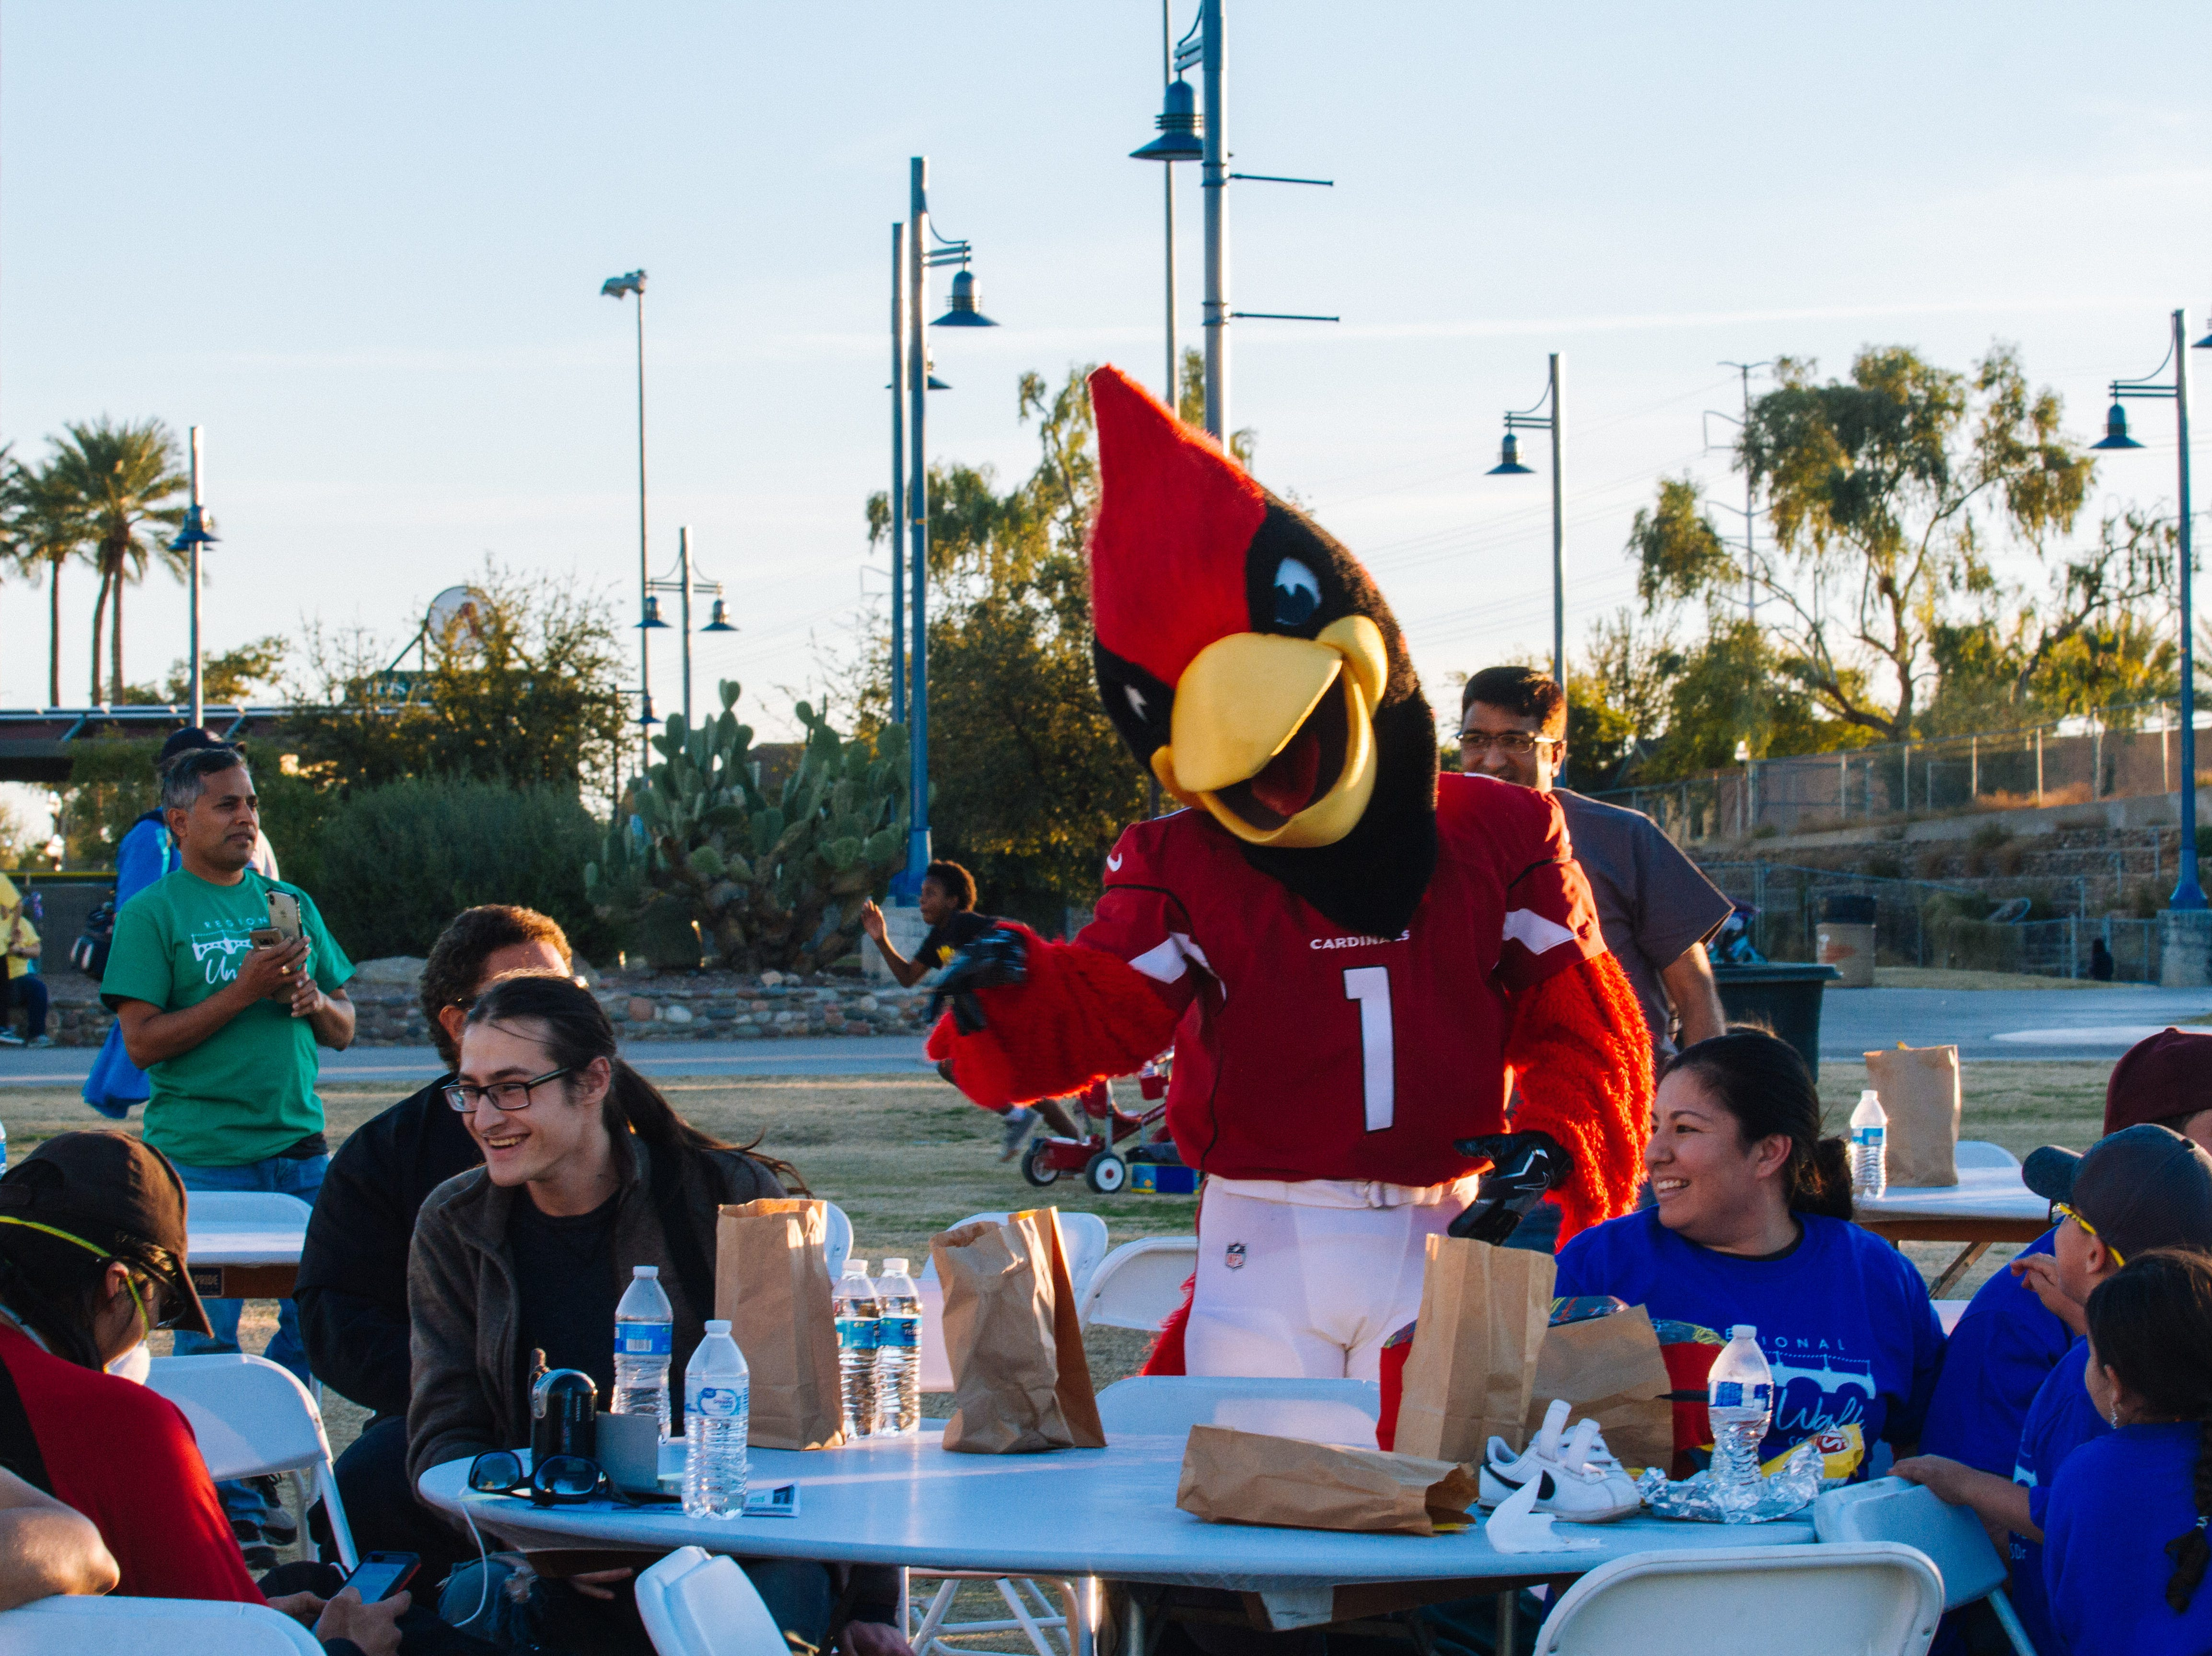 Big Red takes photos with people at the Unity Walk 2019 at Tempe Beach Park, in Tempe, Arizona on Saturday, Jan. 26, 2019.